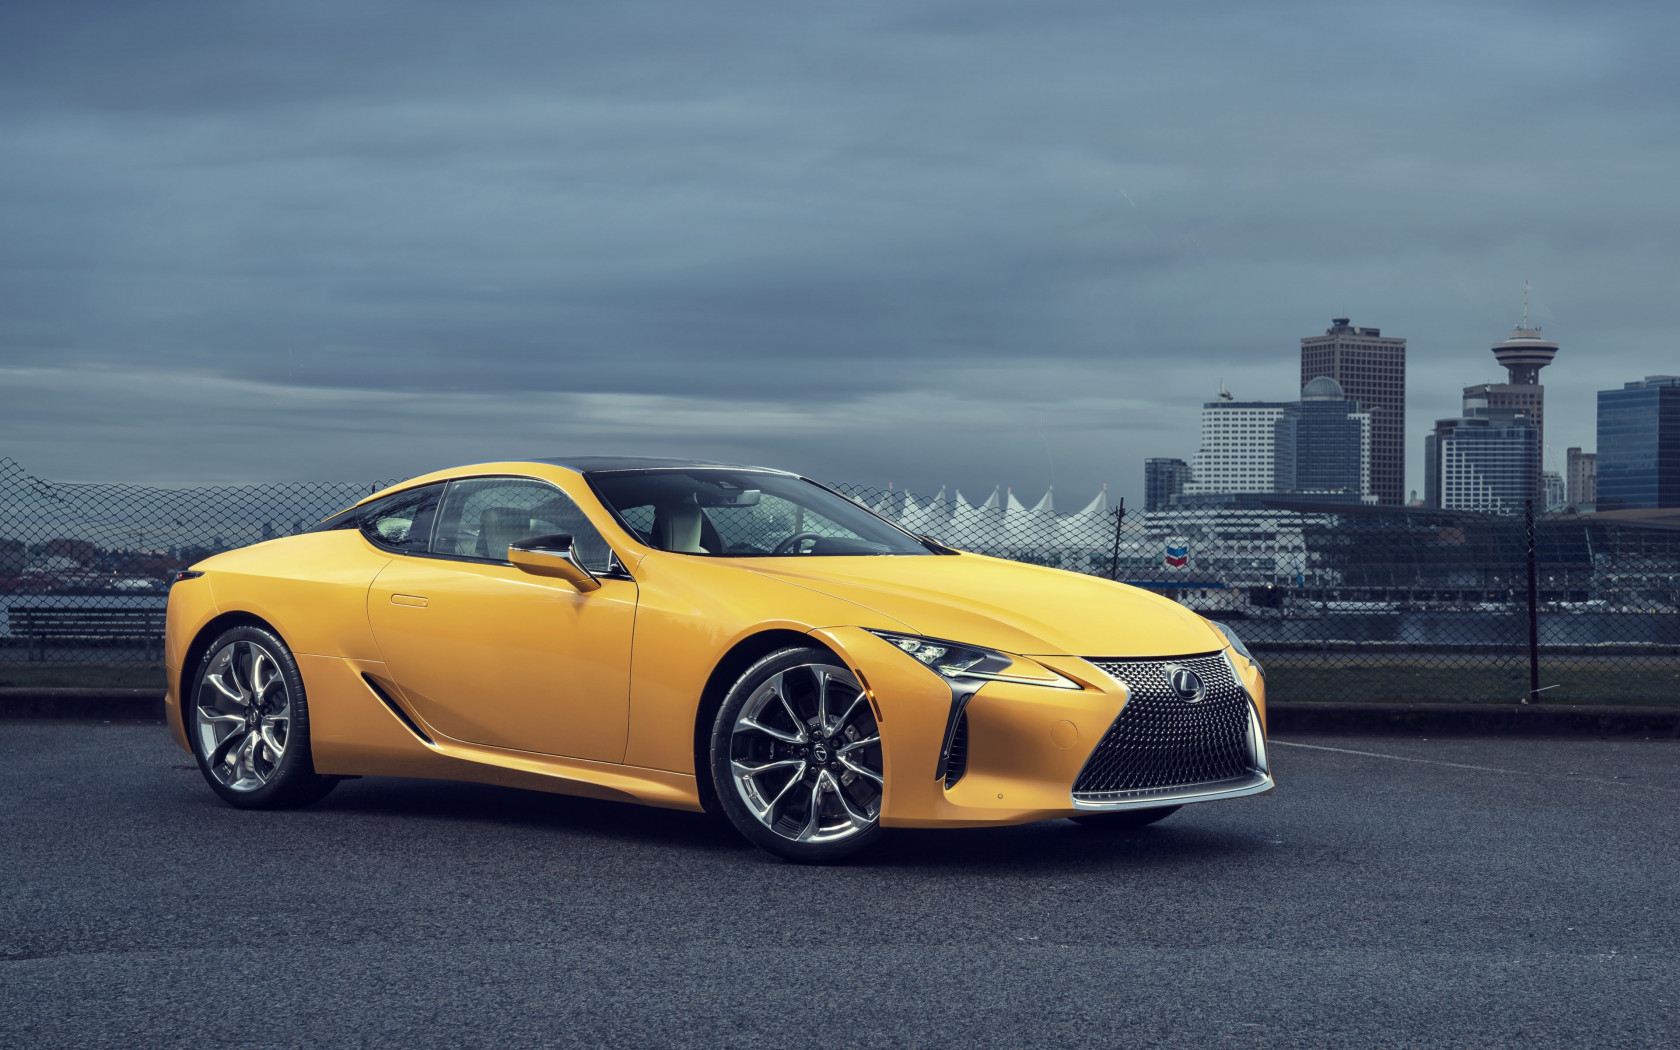 Lexus LC 500 Inspiration Series wallpaper 1680x1050